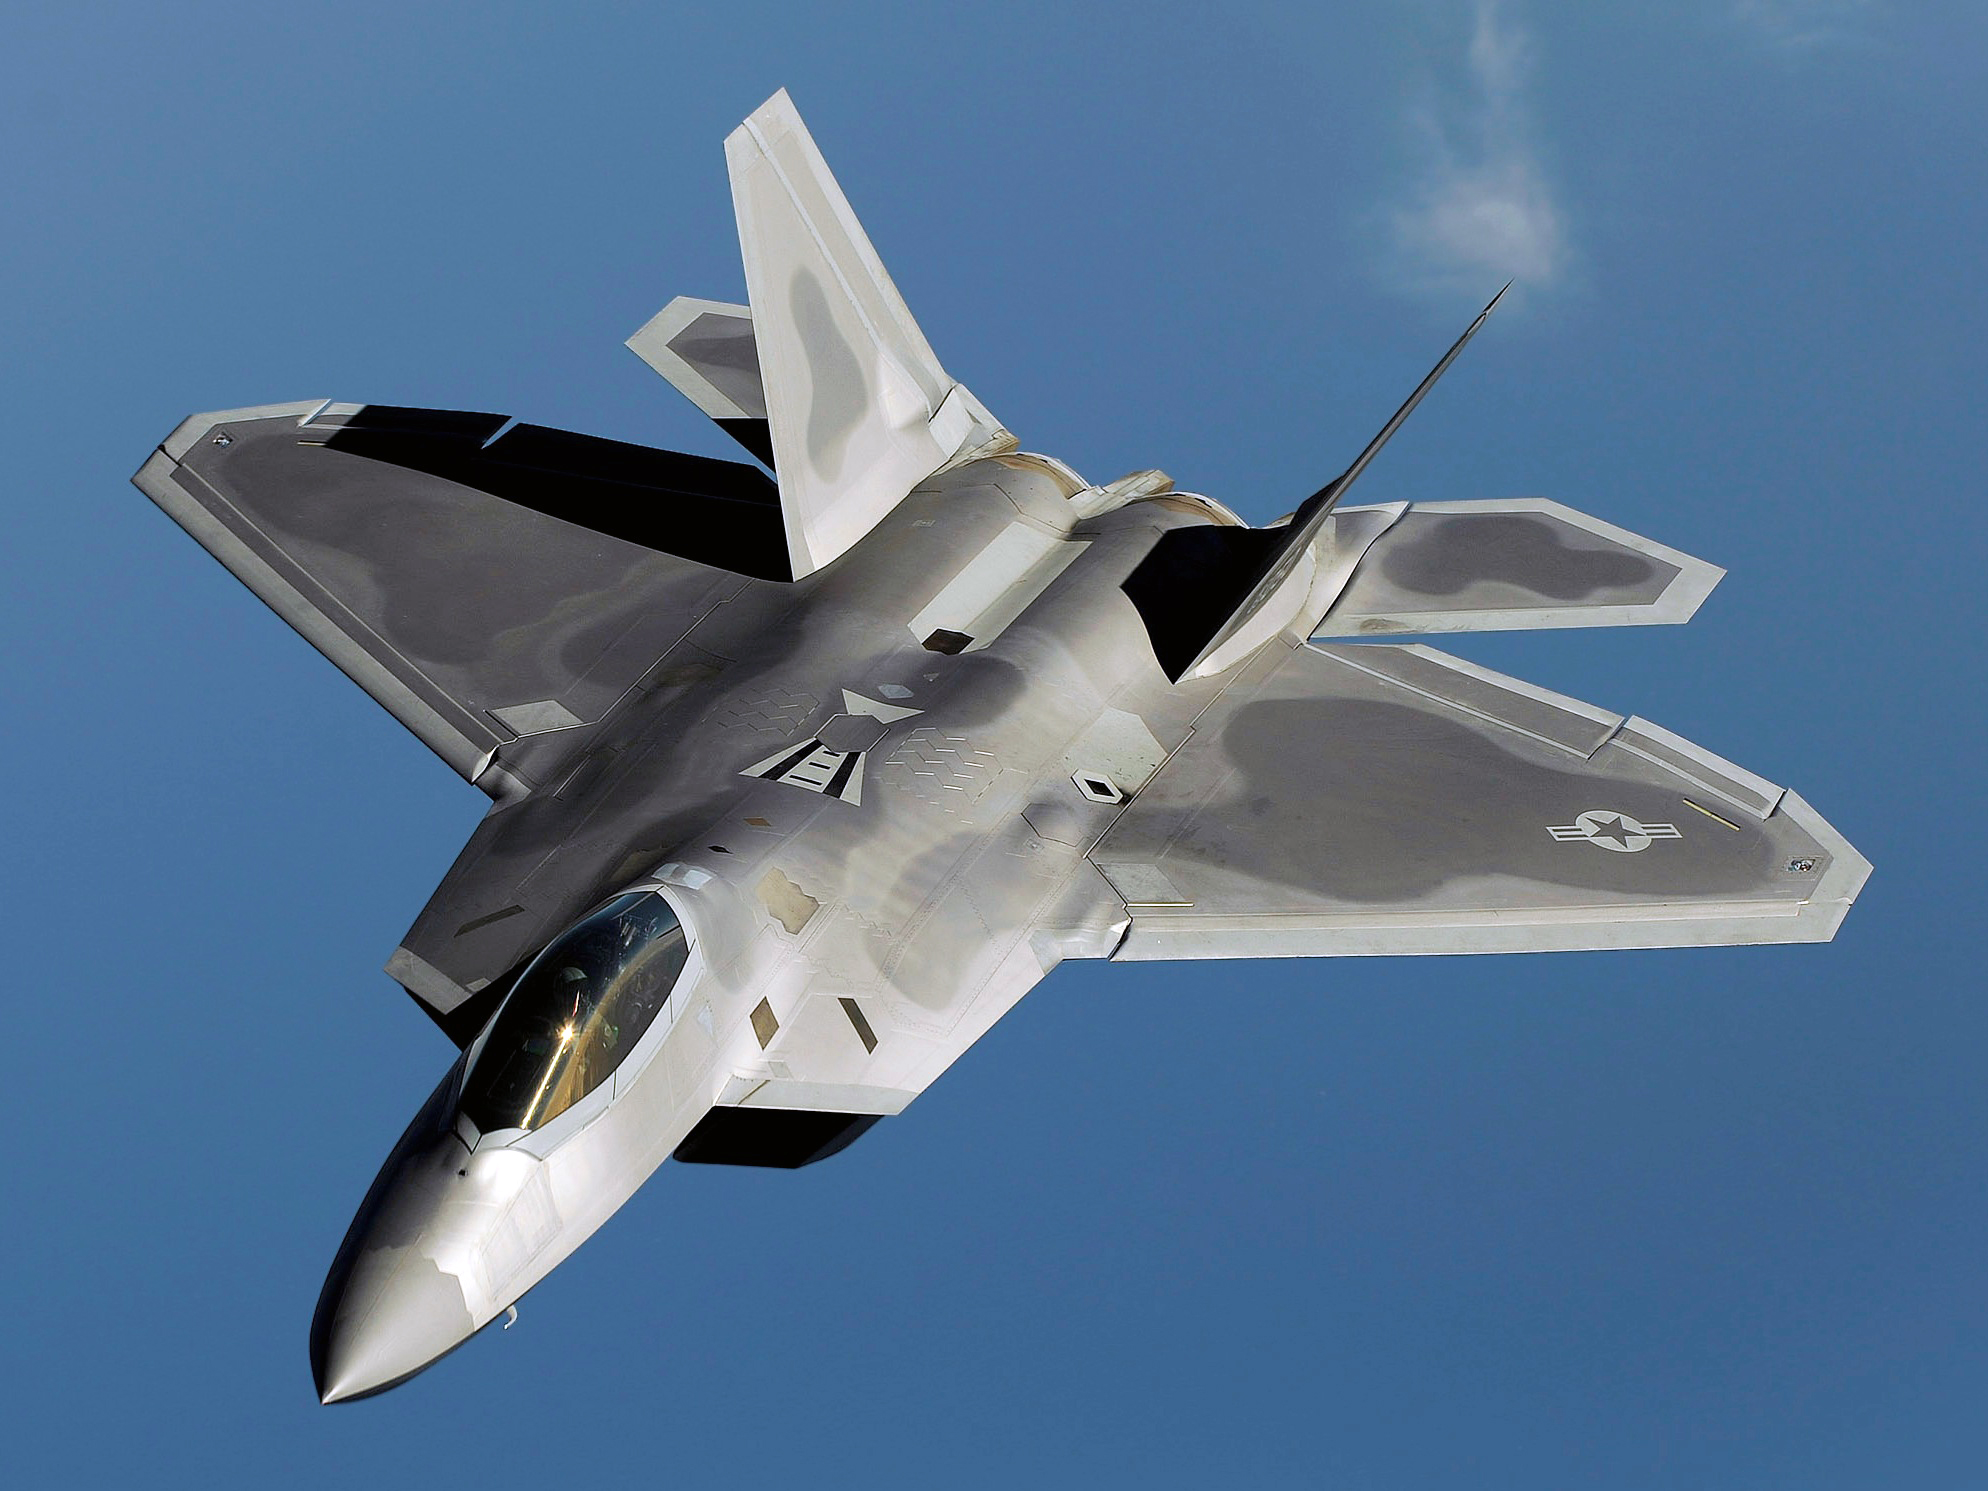 F-22 Raptor to make return appearance at 51st National Championship Air Races